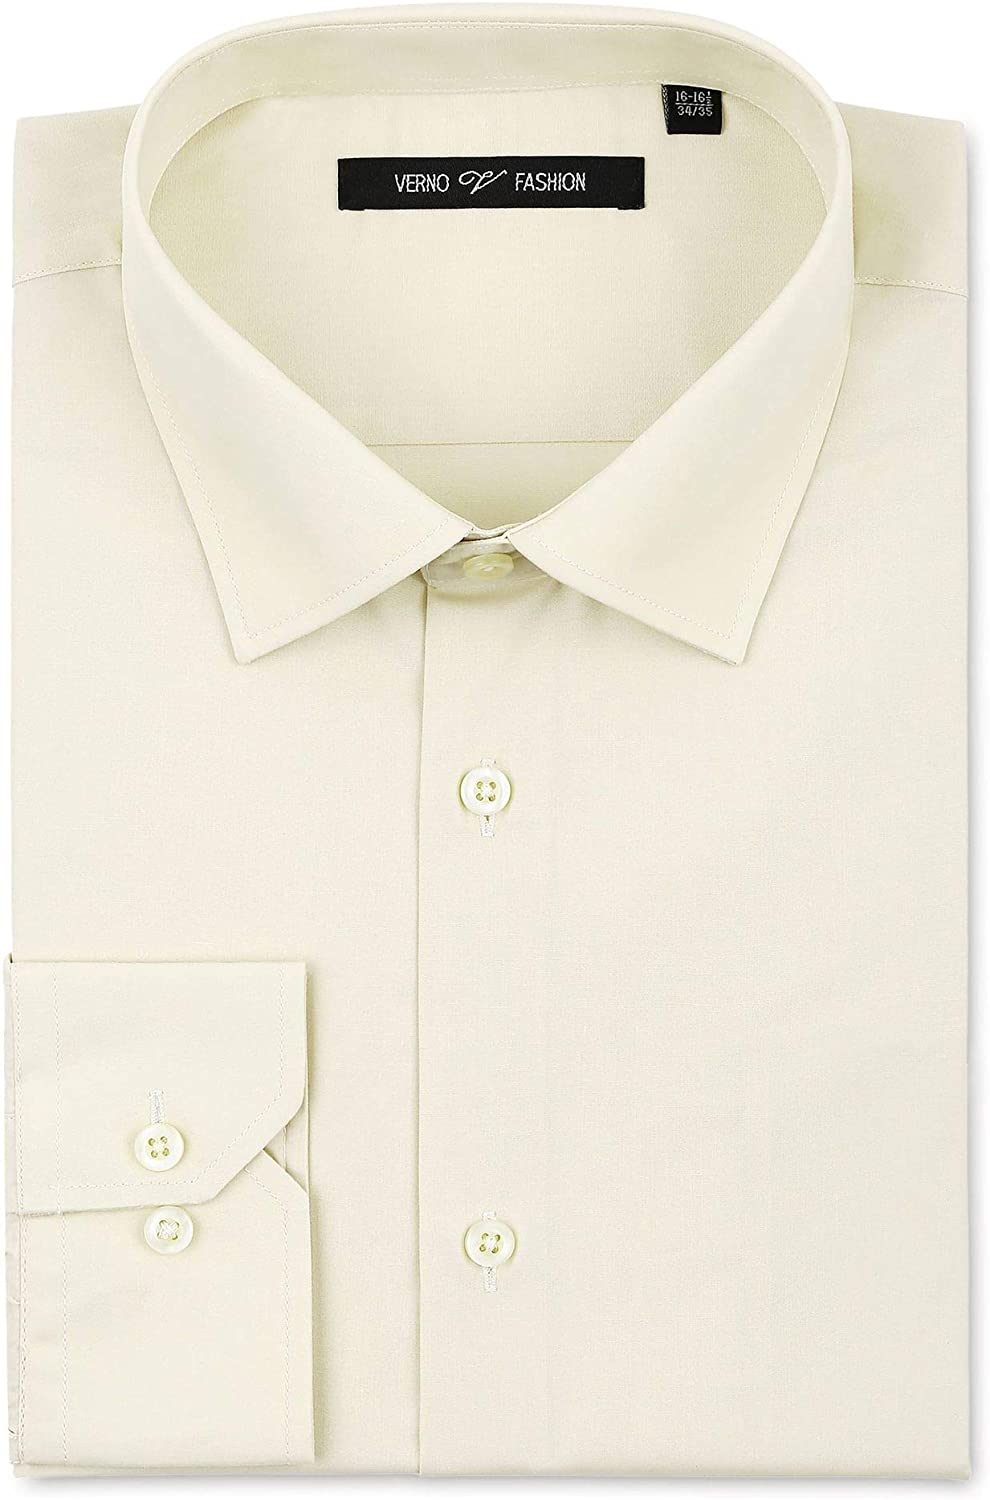 VERNO FASHION Men's Classic Fit Solid Dress Shirt Long Sleeve Spread Collar Shirt